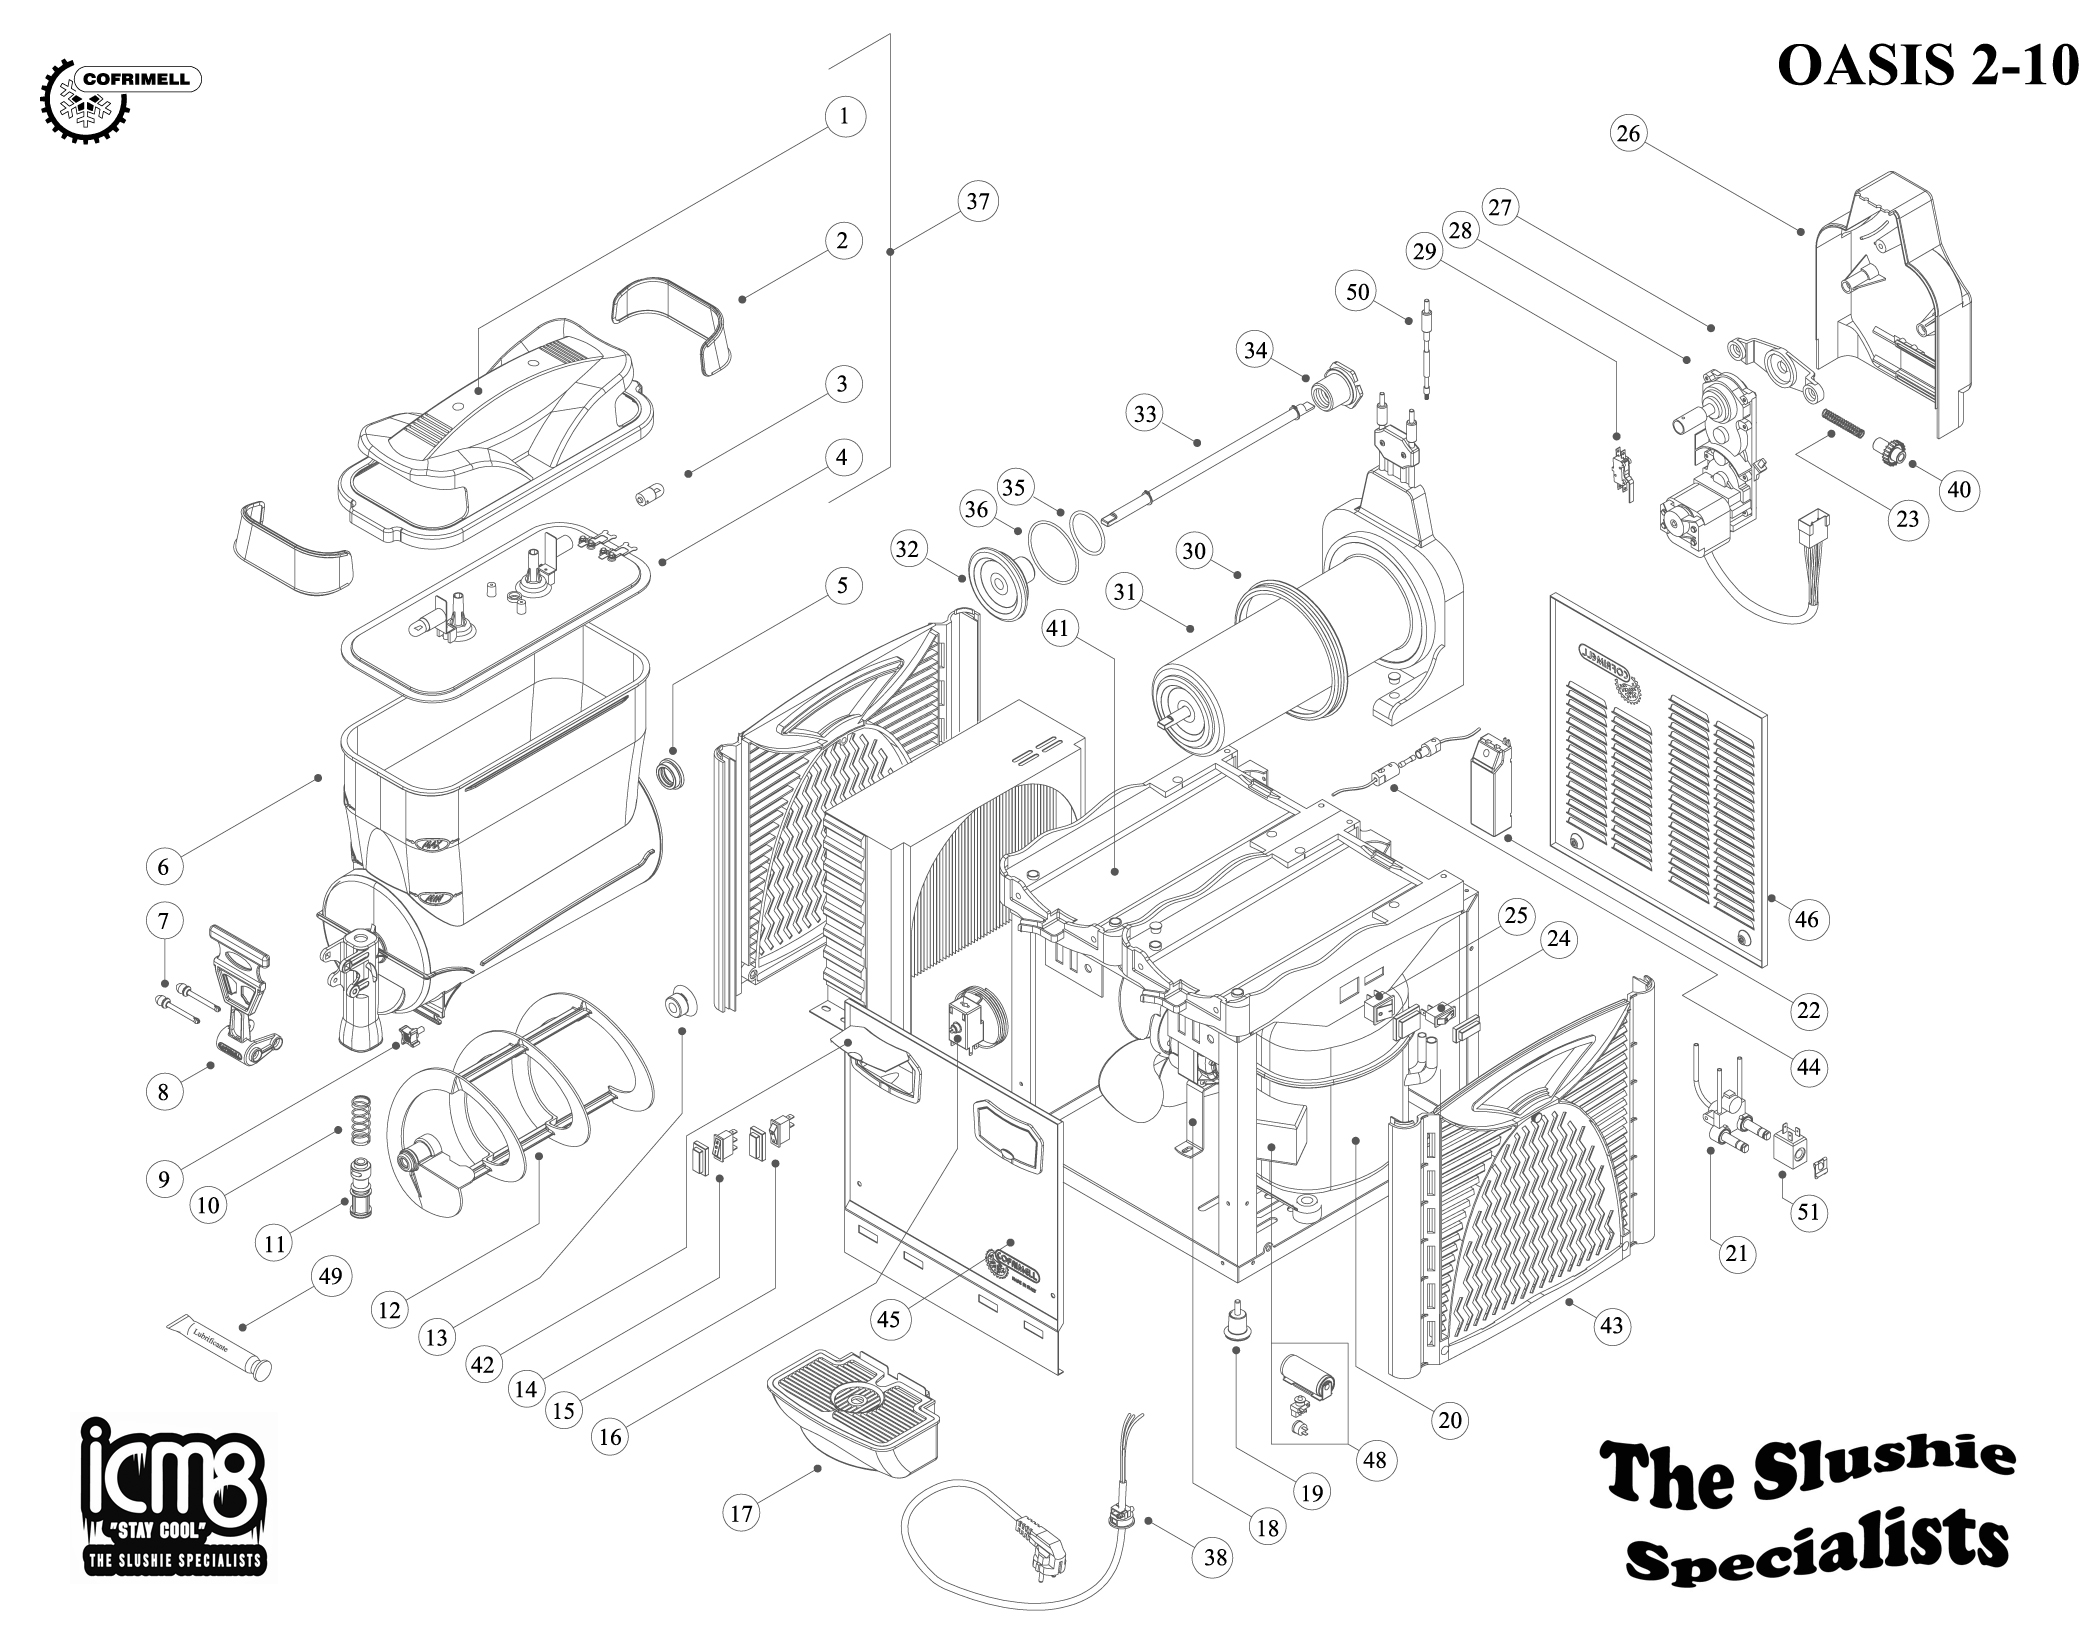 Cofrimell Oasis 2-10 Exploded View